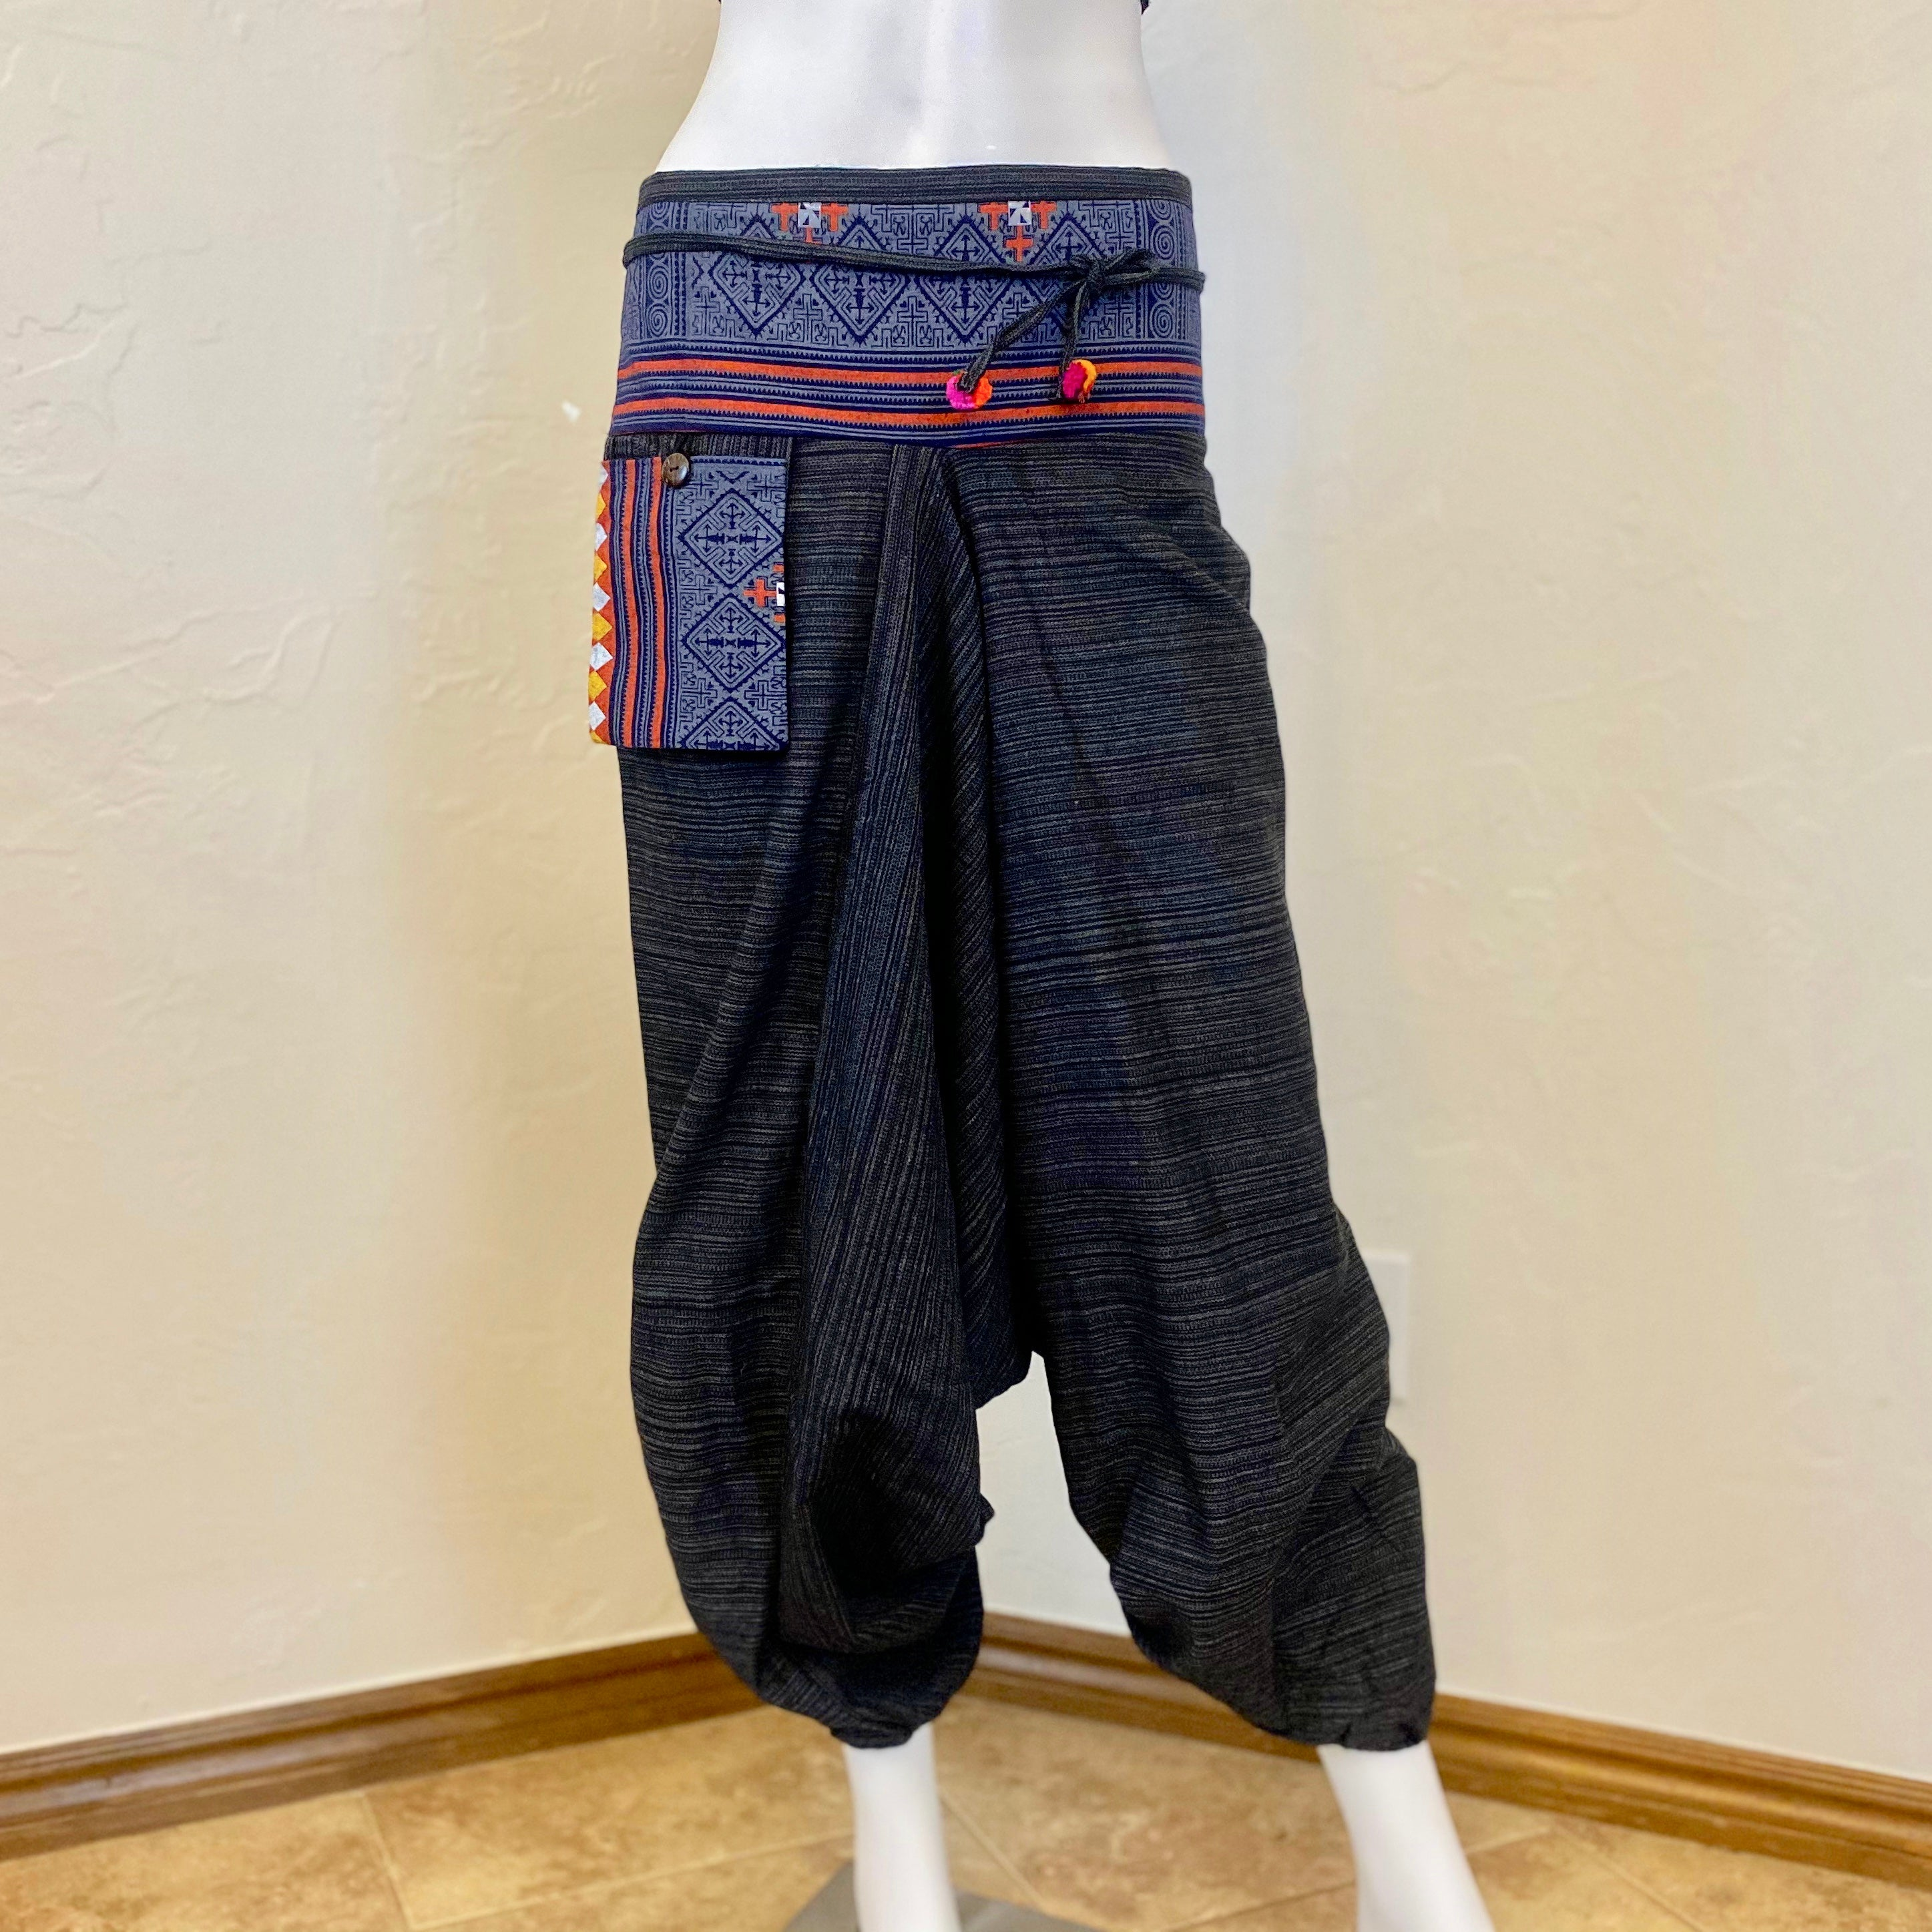 Pinstripe Cotton Low Cut Harem Unisex Pants With Hill Tribe Trim